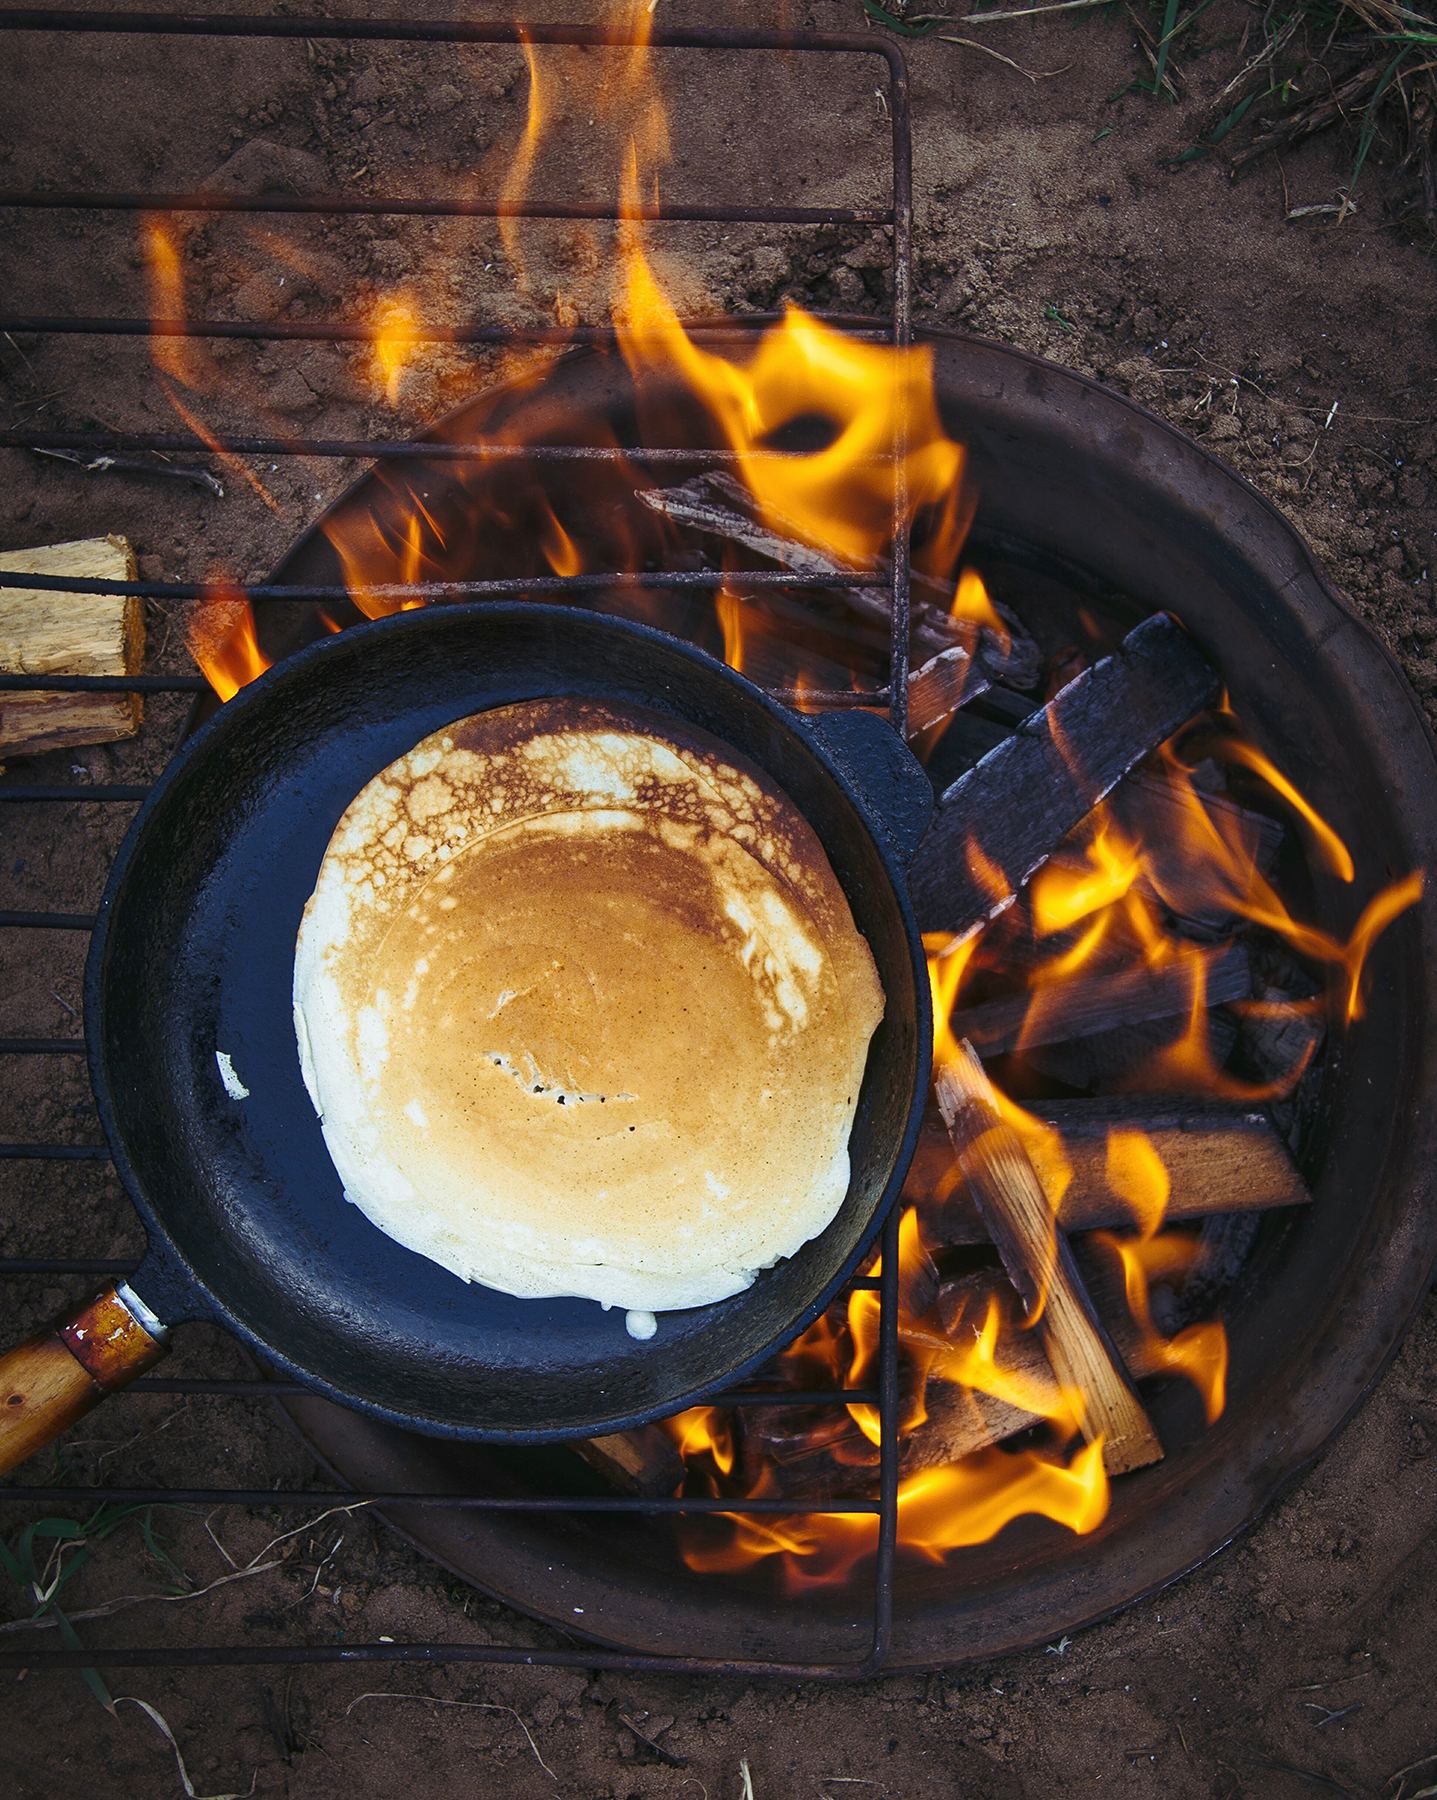 Pancake cooking on outdoor grill